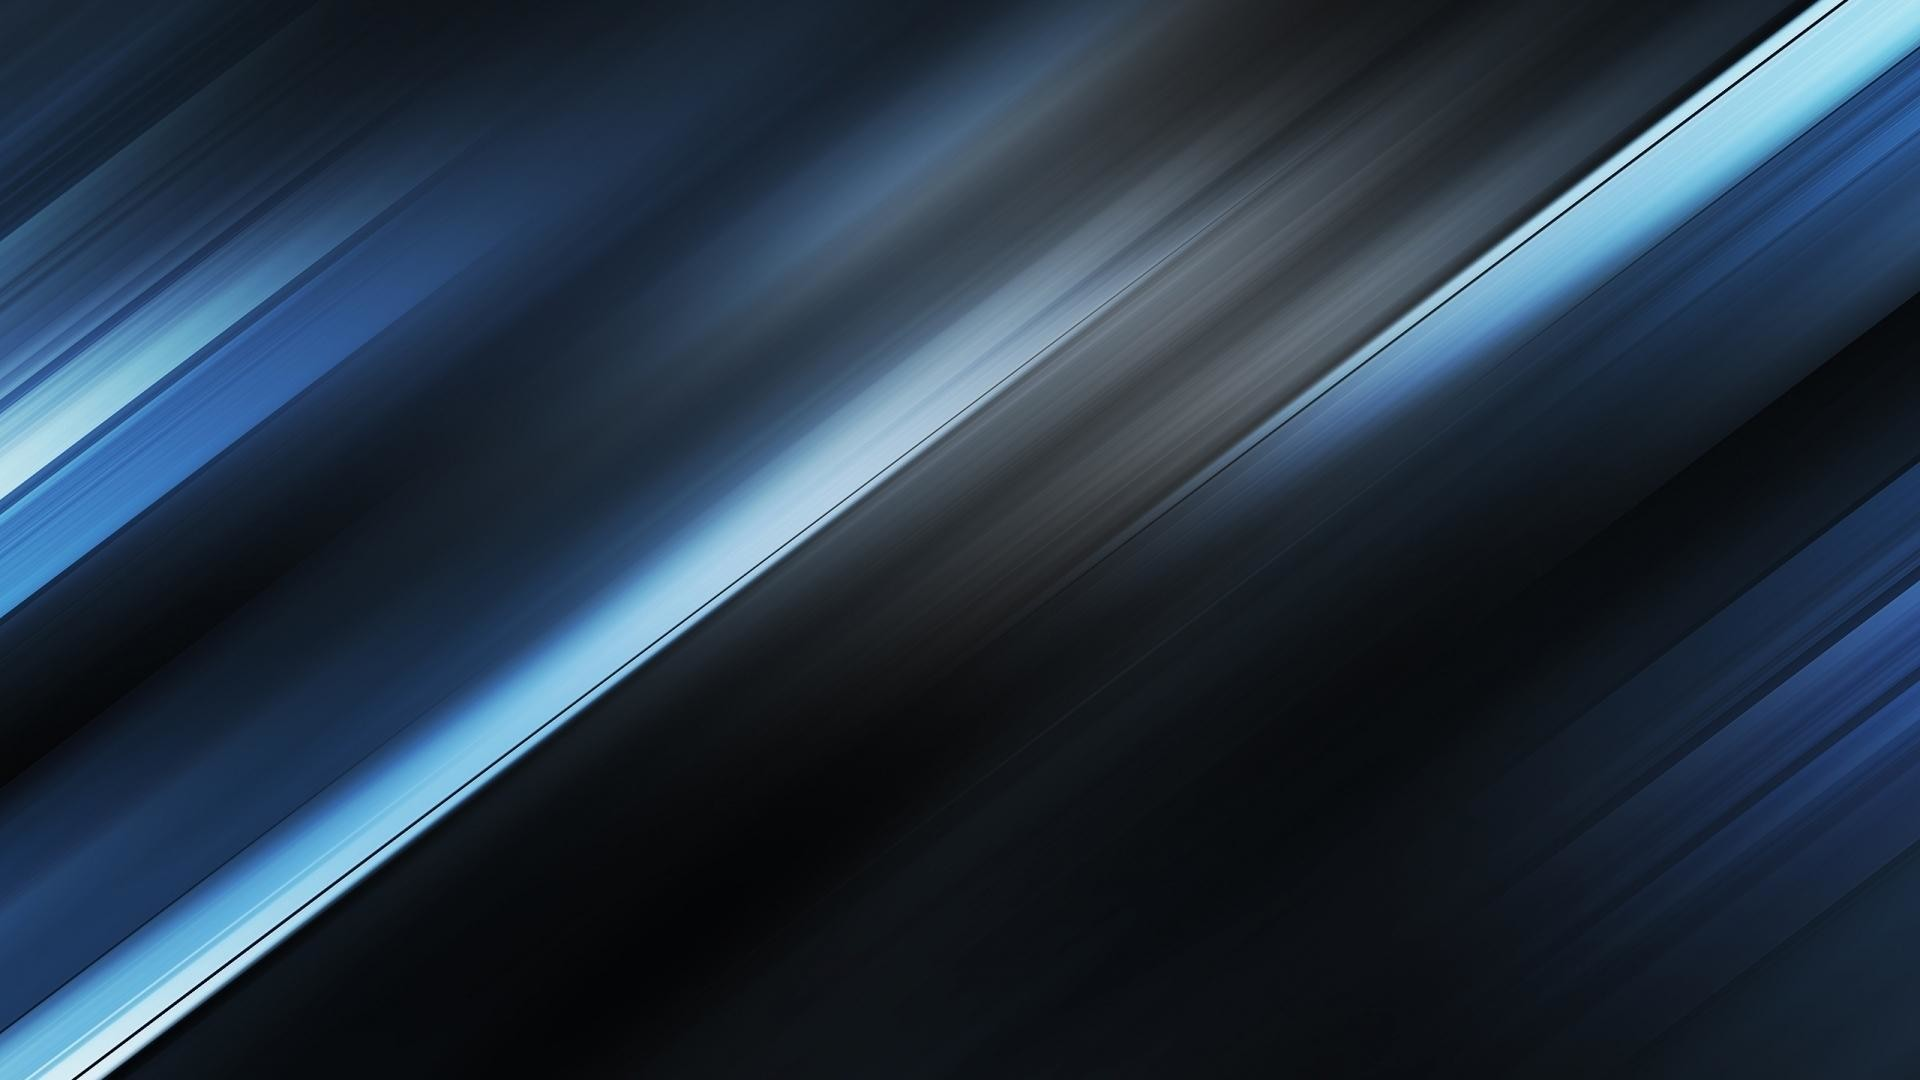 wallpaper.wiki-HD-cool-blue-abstract-background-PIC-